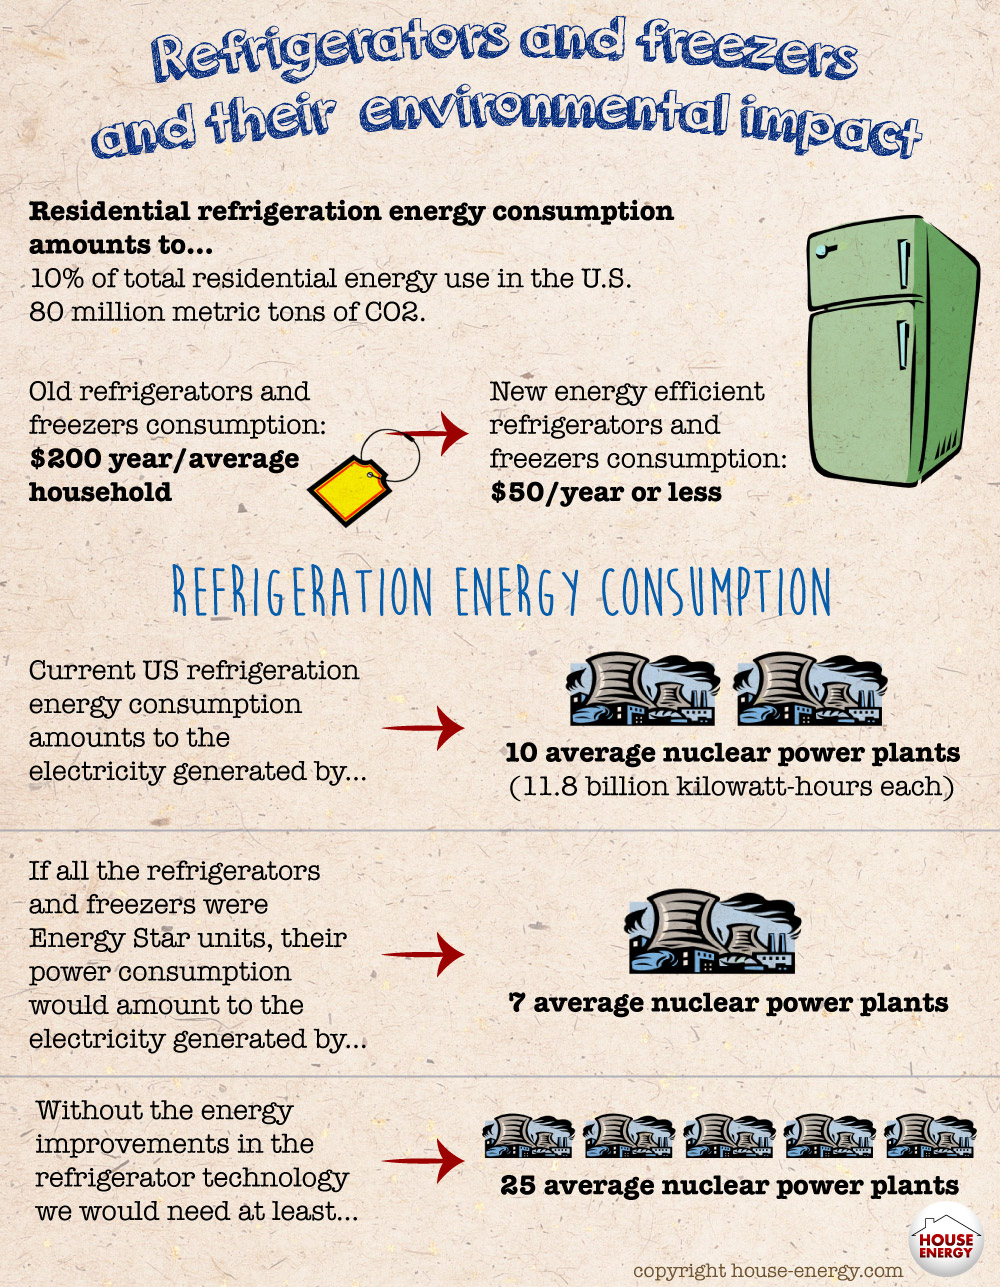 Refrigerators, freezers & environment